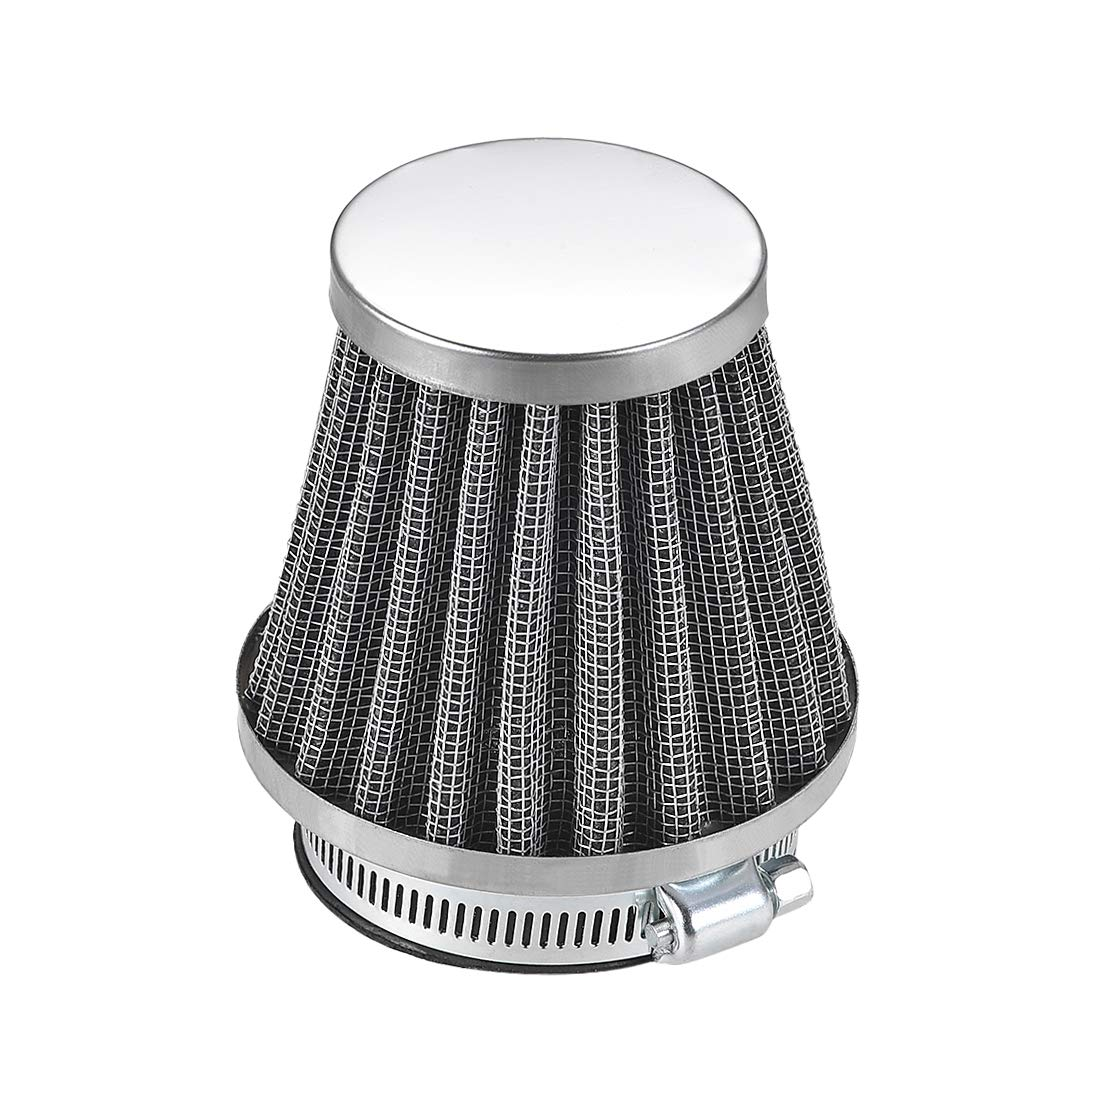 sourcing map 39mm Air Filter for 50cc 110cc 125cc 150cc 200cc gy6 Moped Scooter Atv Dirt Bike Motorcycle